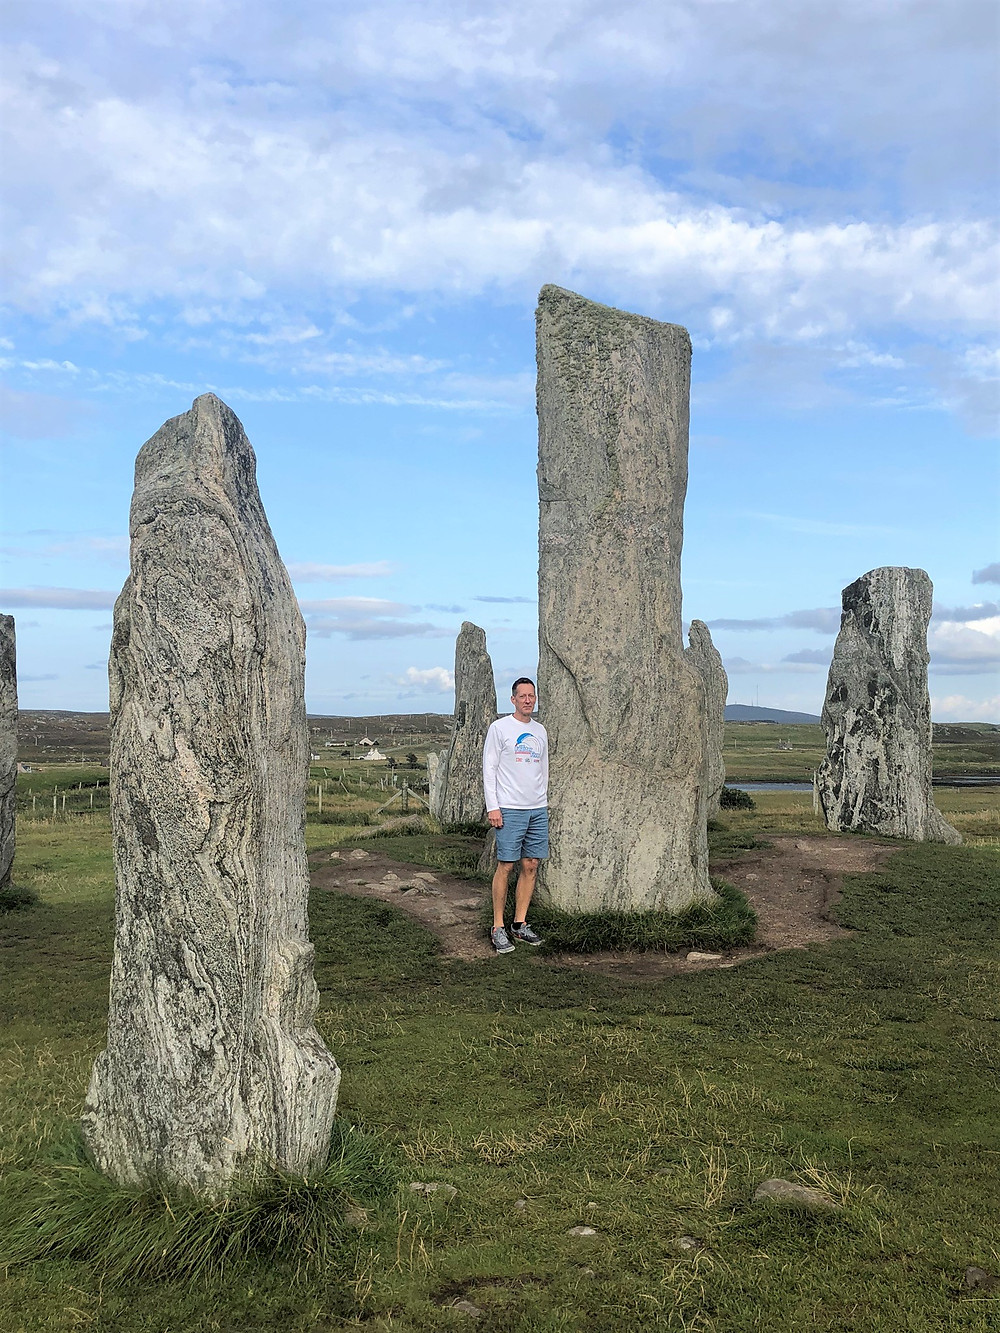 16 foot central monolith near the center of the Standing Stones of Callanish erected over 5000 years ago on Lewis and Harris in the Outer Hebrides